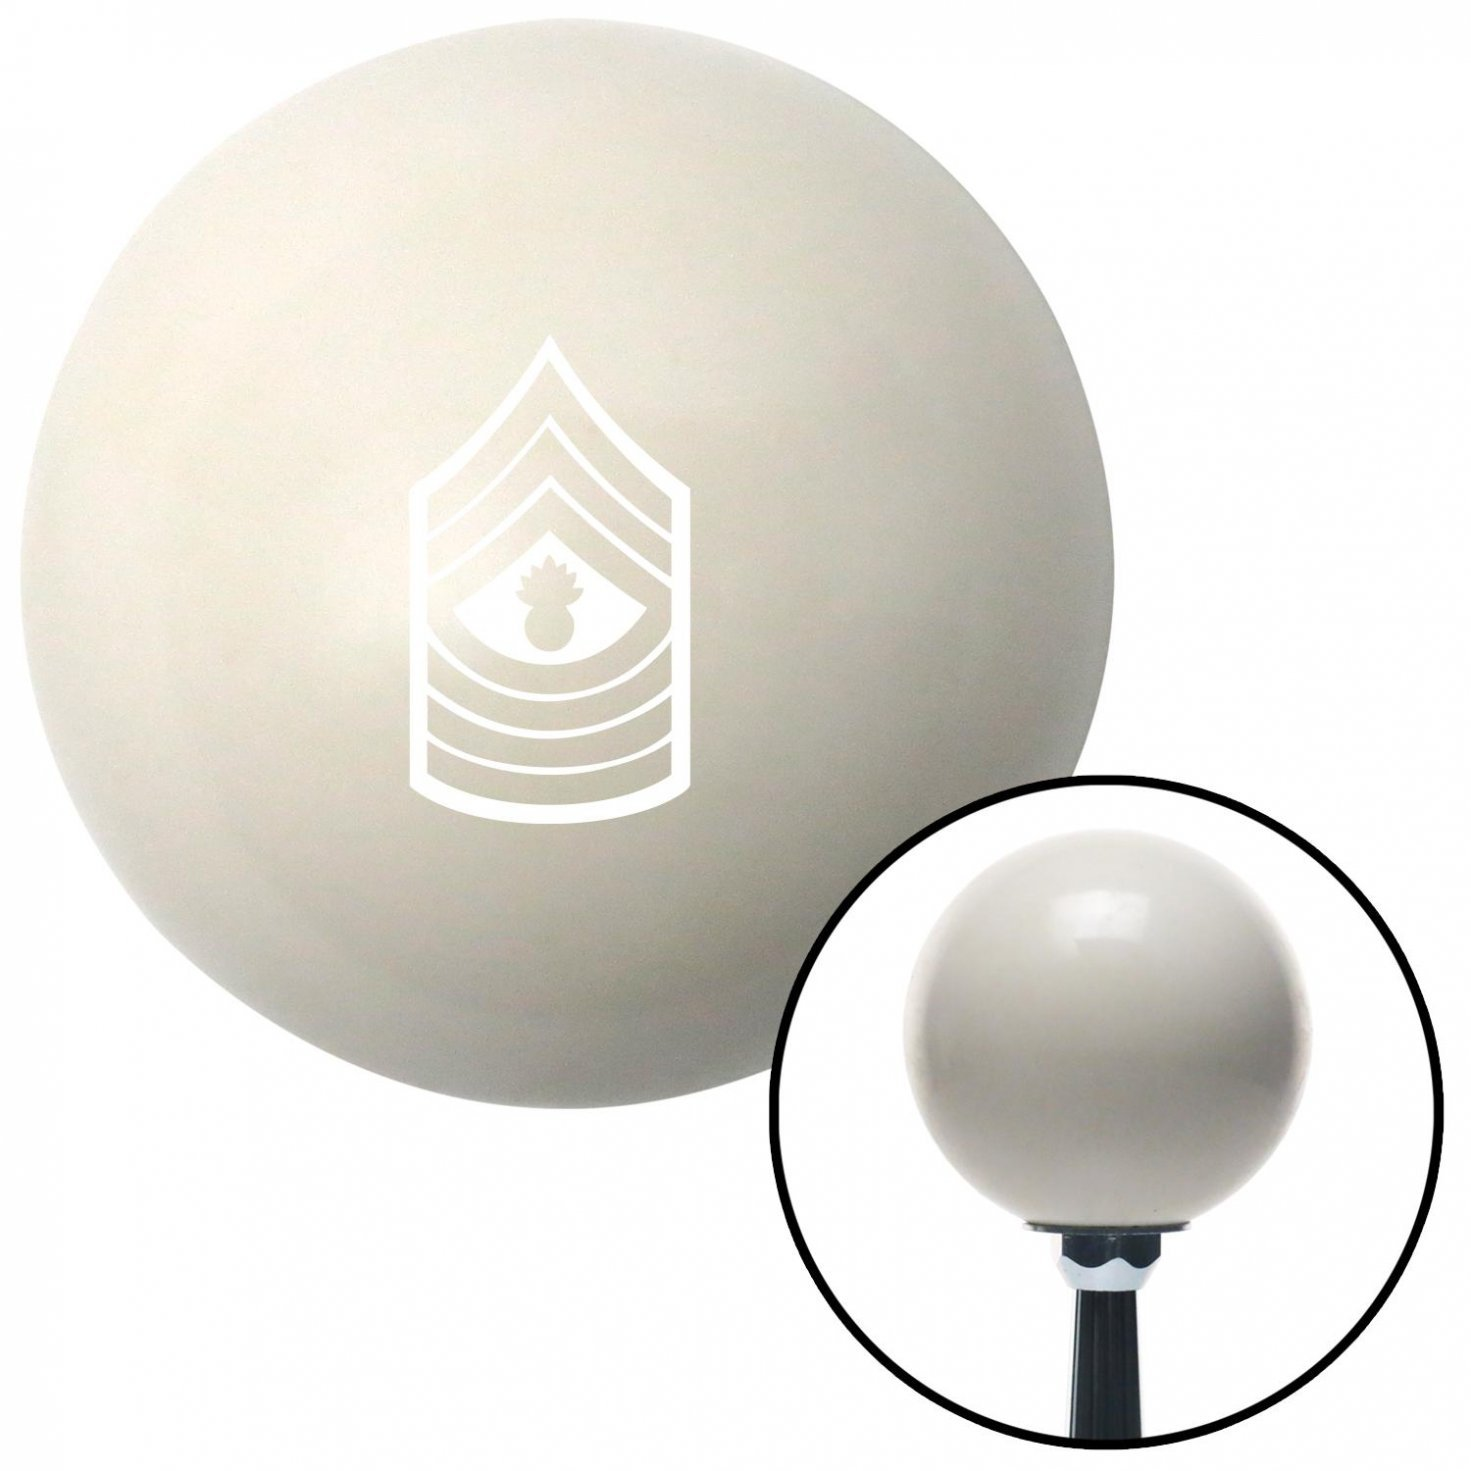 White 09 Master Gunnery Sergeant American Shifter 40754 Ivory Shift Knob with 16mm x 1.5 Insert